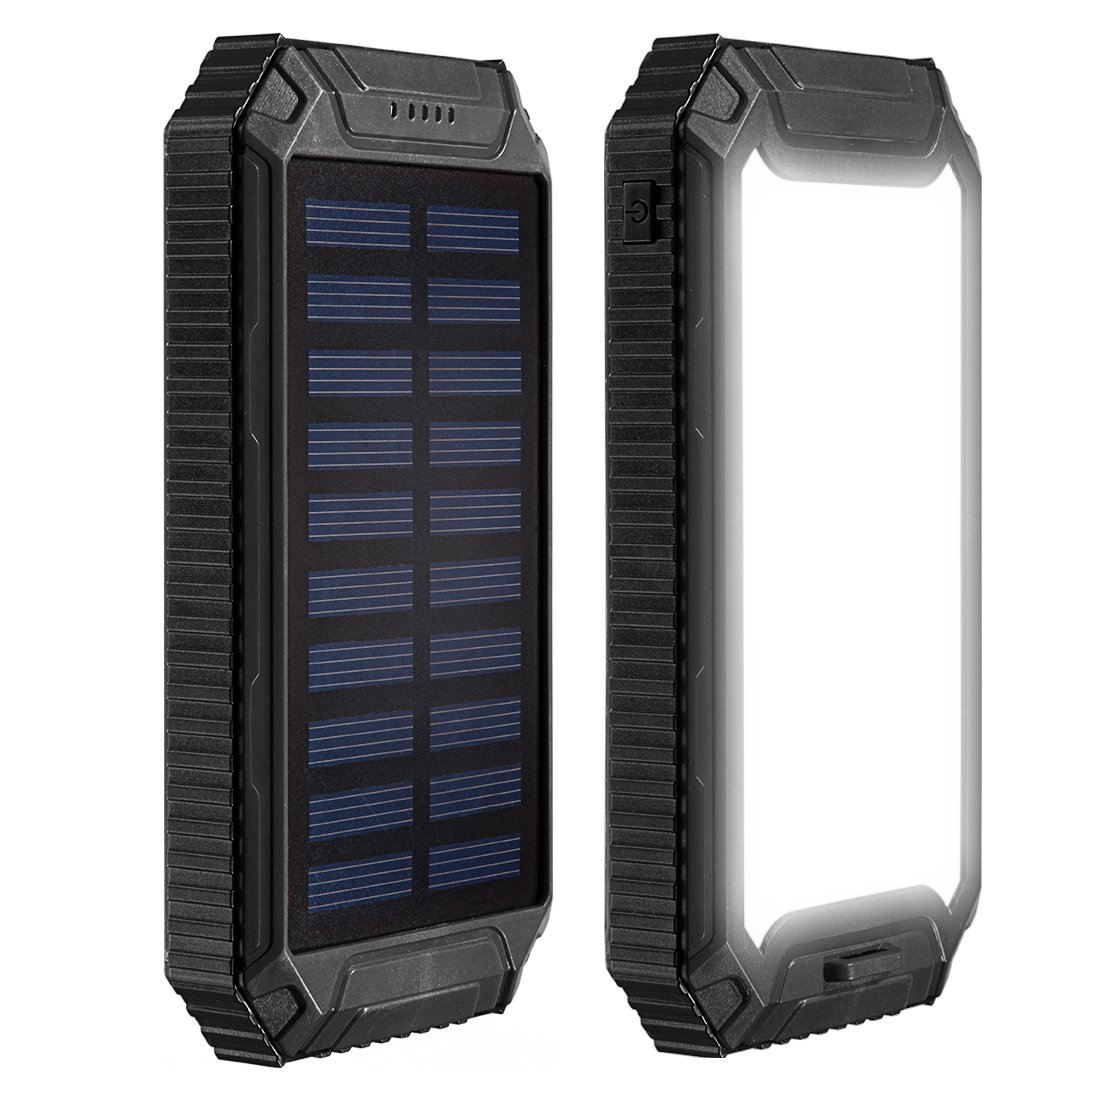 uxcell 12000mAh Solar Power Charger Waterproof Portable Backup External Battery Pack with 2 USB Port + Flashlight + Carabineer + Compass for Cellphone,Camera at Emergency Outdoors Black